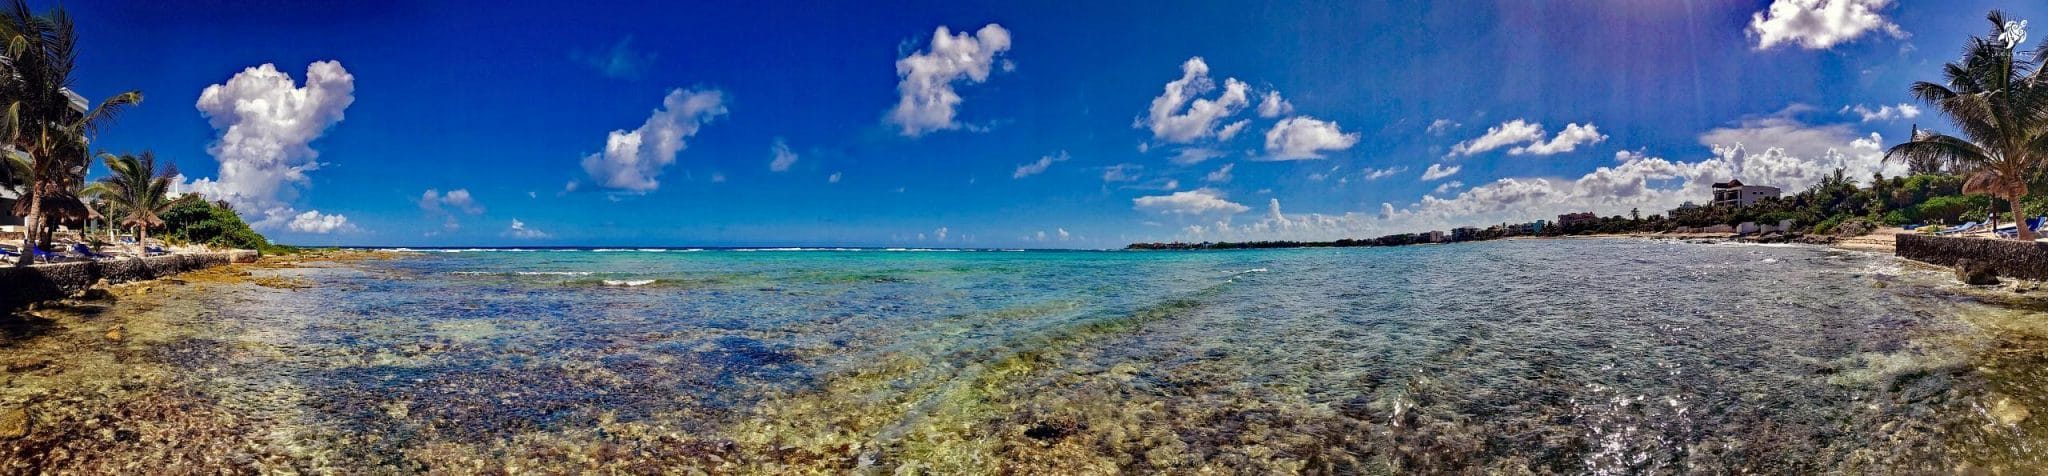 The full beauty of Yal-Ku from the cenote's edge looking towards the mouth of the Caribbean